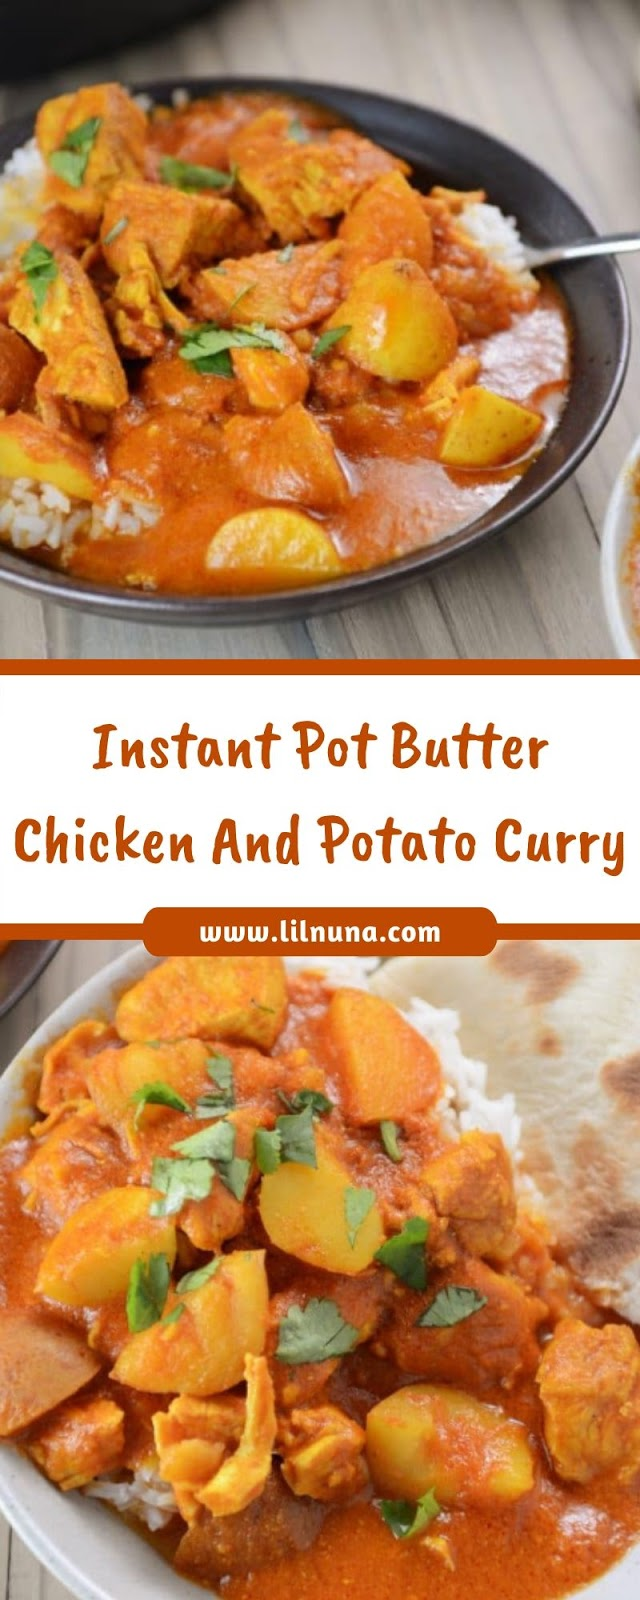 Instant Pot Butter Chicken And Potato Curry